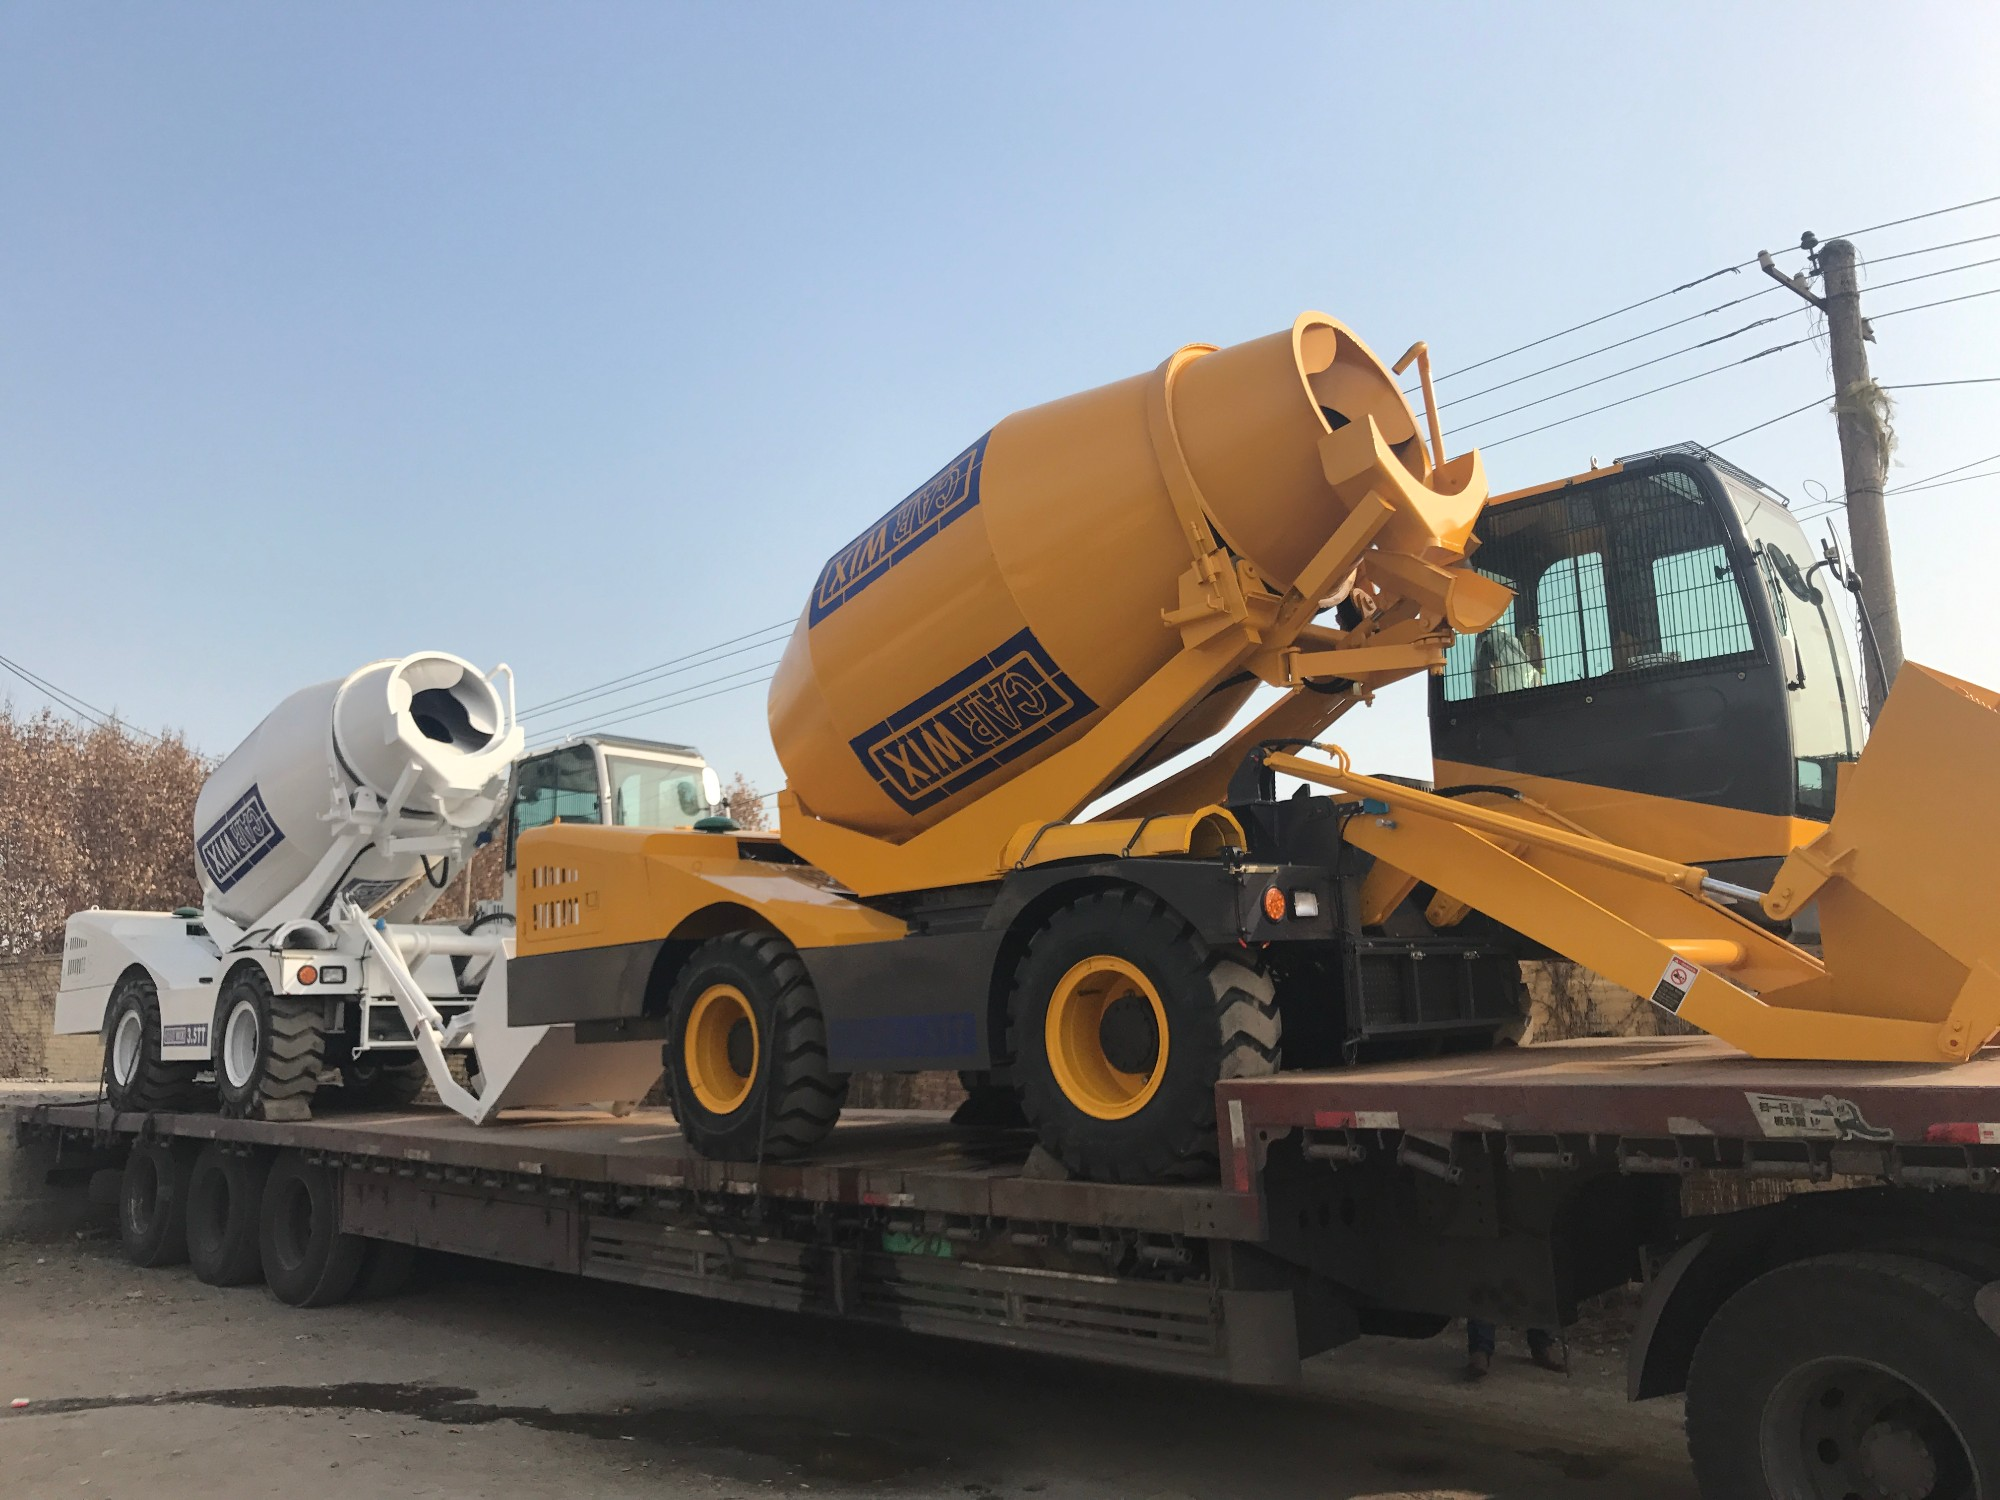 Sales Self-loading Concrete Mixer Dumper Truck Mixer Concrete, Buy Self-loading Concrete Mixer Dumper Truck Mixer Concrete, Self-loading Concrete Mixer Dumper Truck Mixer Concrete Factory, Self-loading Concrete Mixer Dumper Truck Mixer Concrete Brands